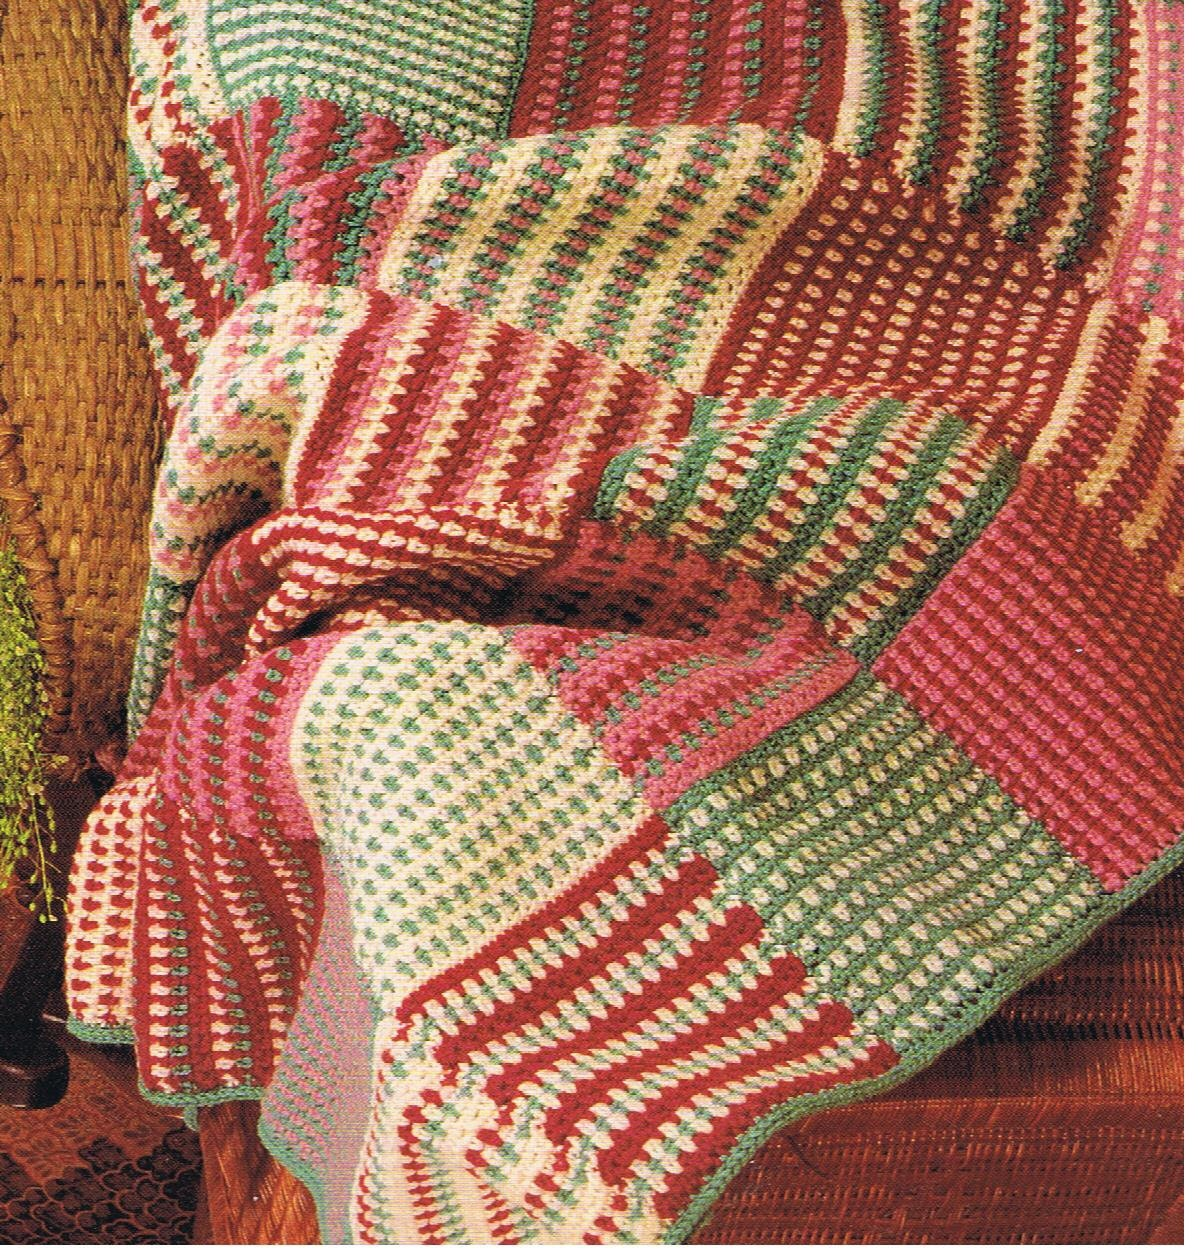 Crochet Beginner Patterns Afghan : beginner afghan crochet pattern/pdf